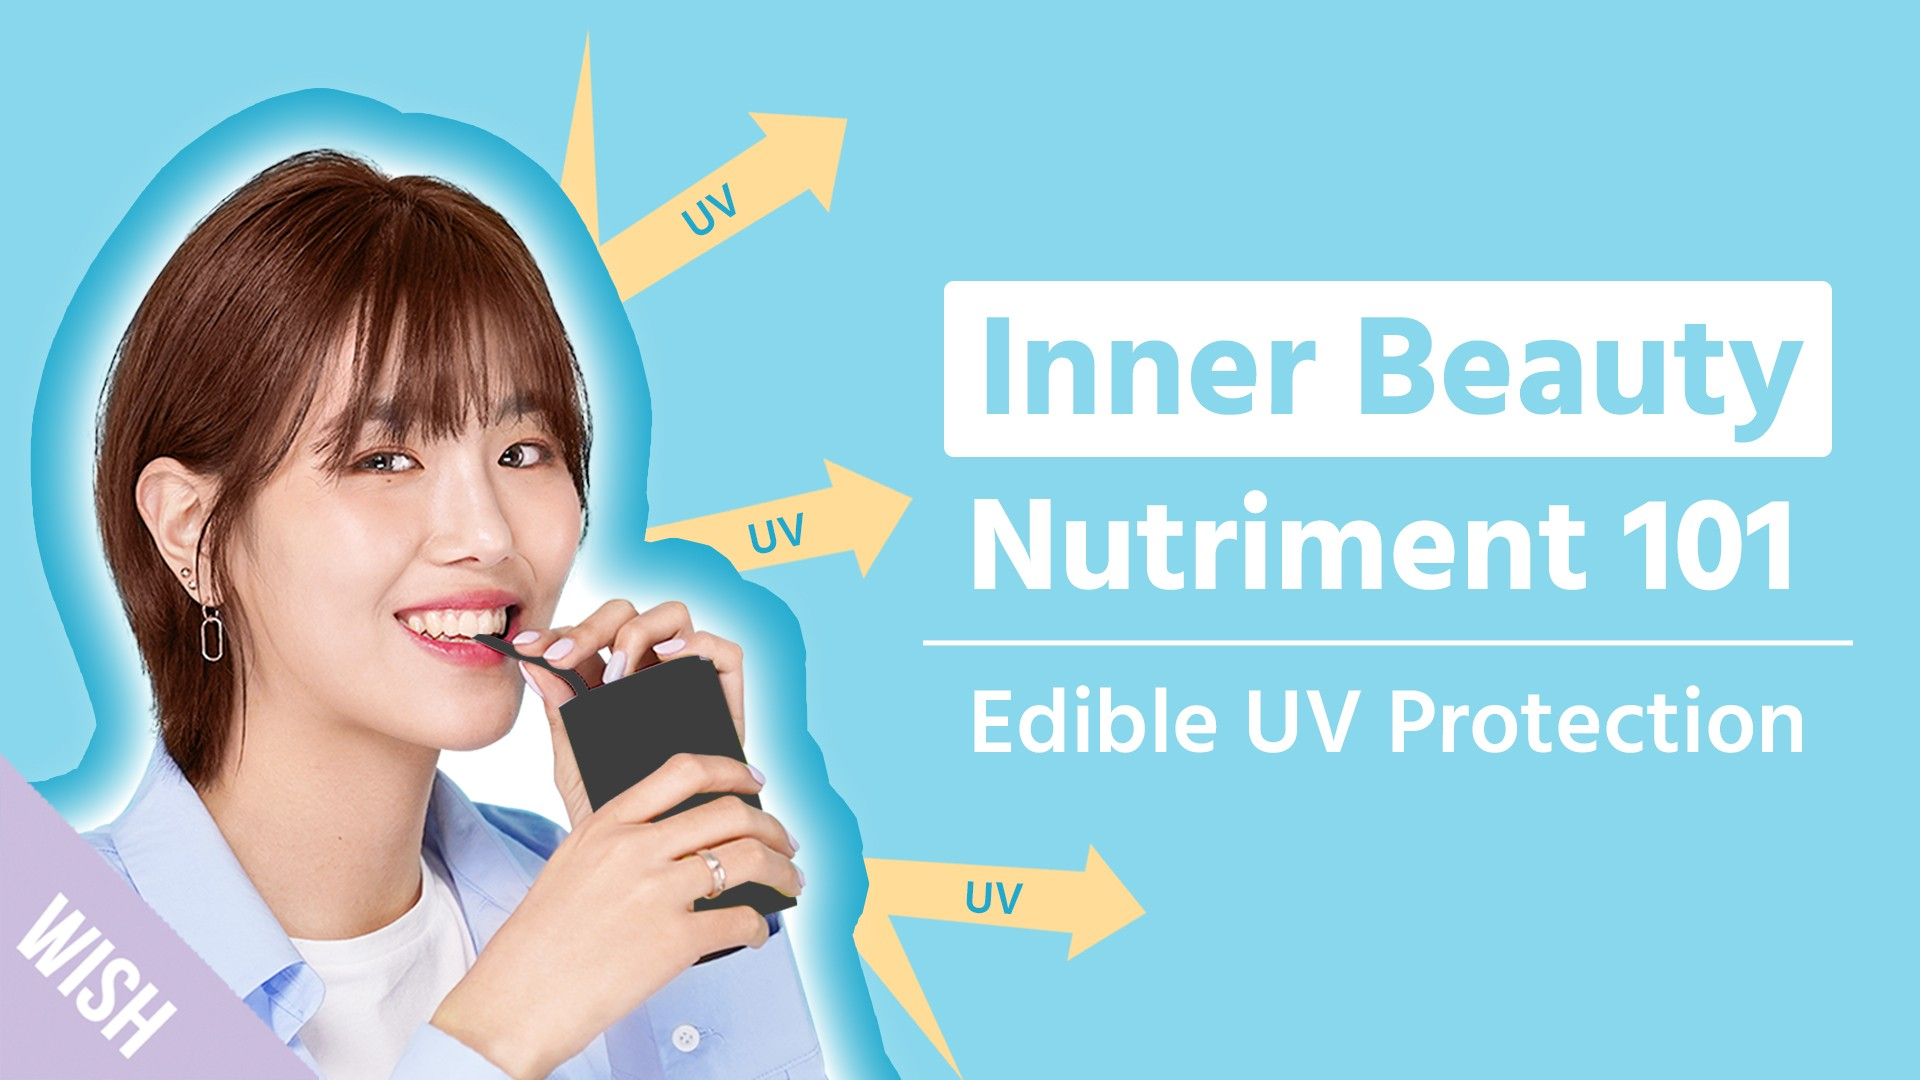 Does Inner Beauty Nutriment Really Restore The Skin's Health? | Edible UV Protection